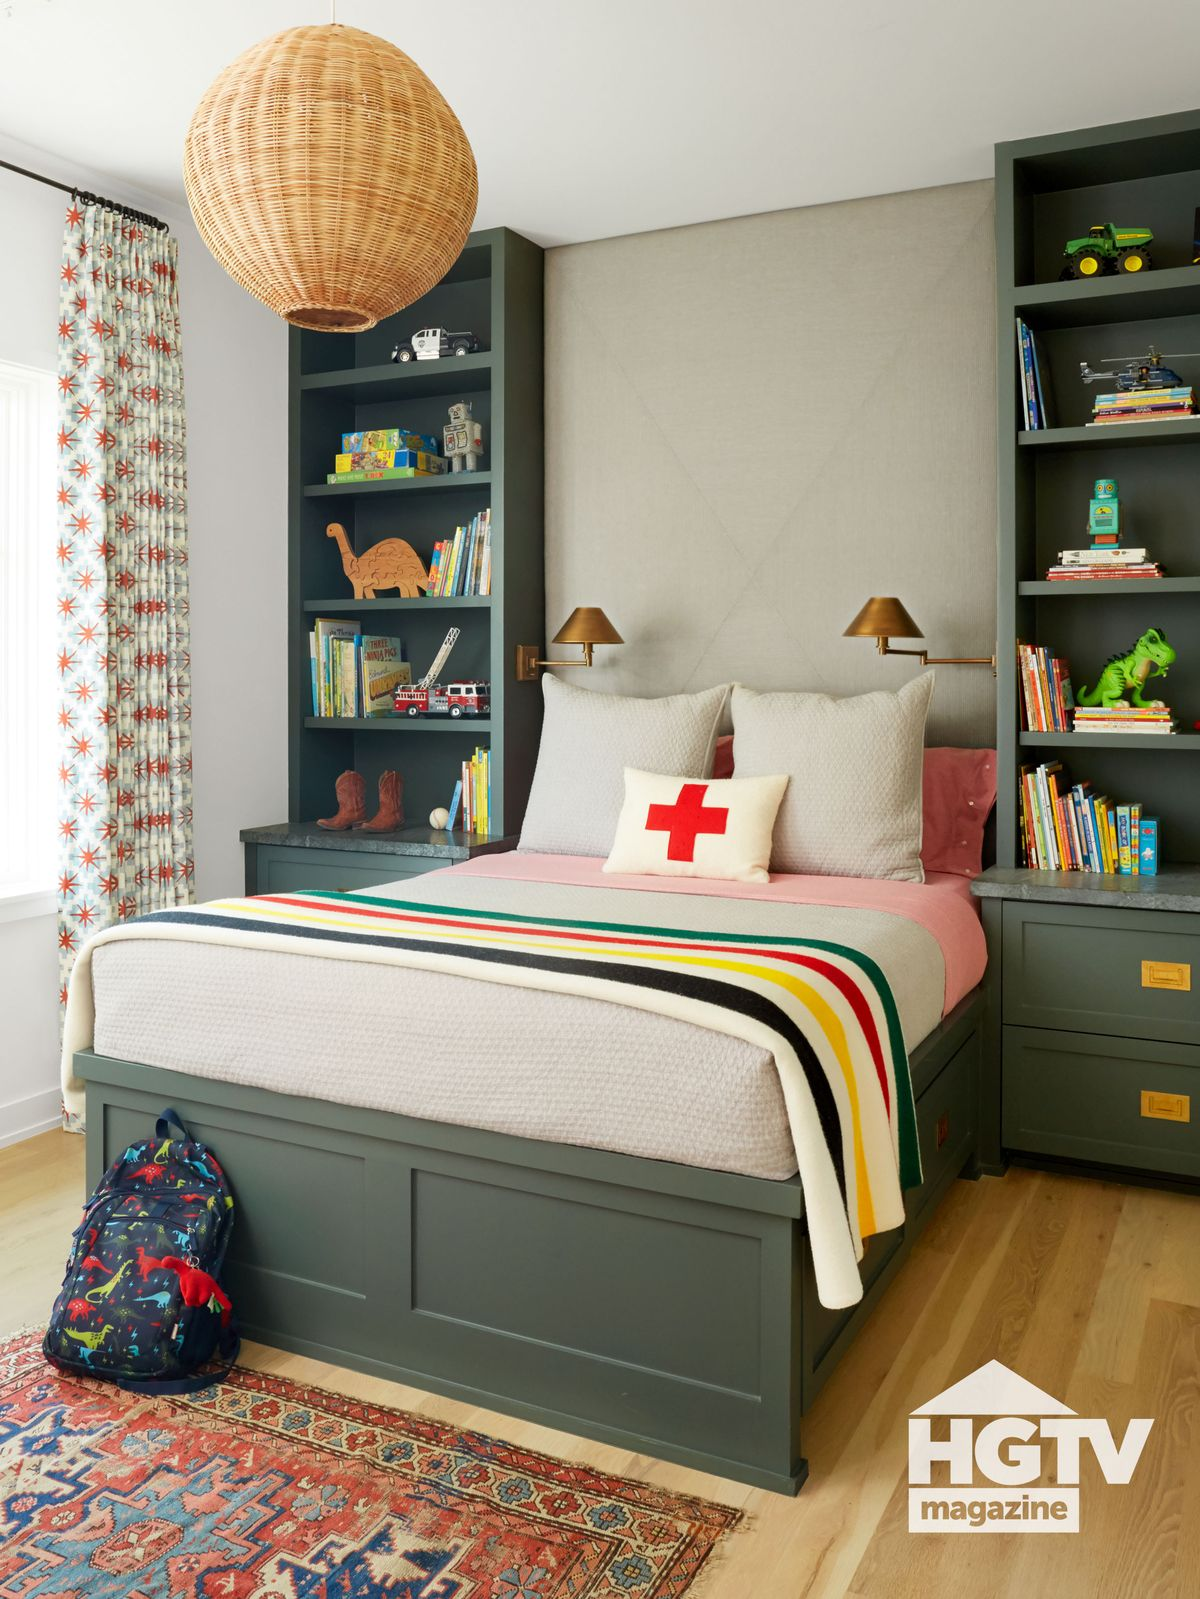 A boy's bedroom featured in HGTV Magazine